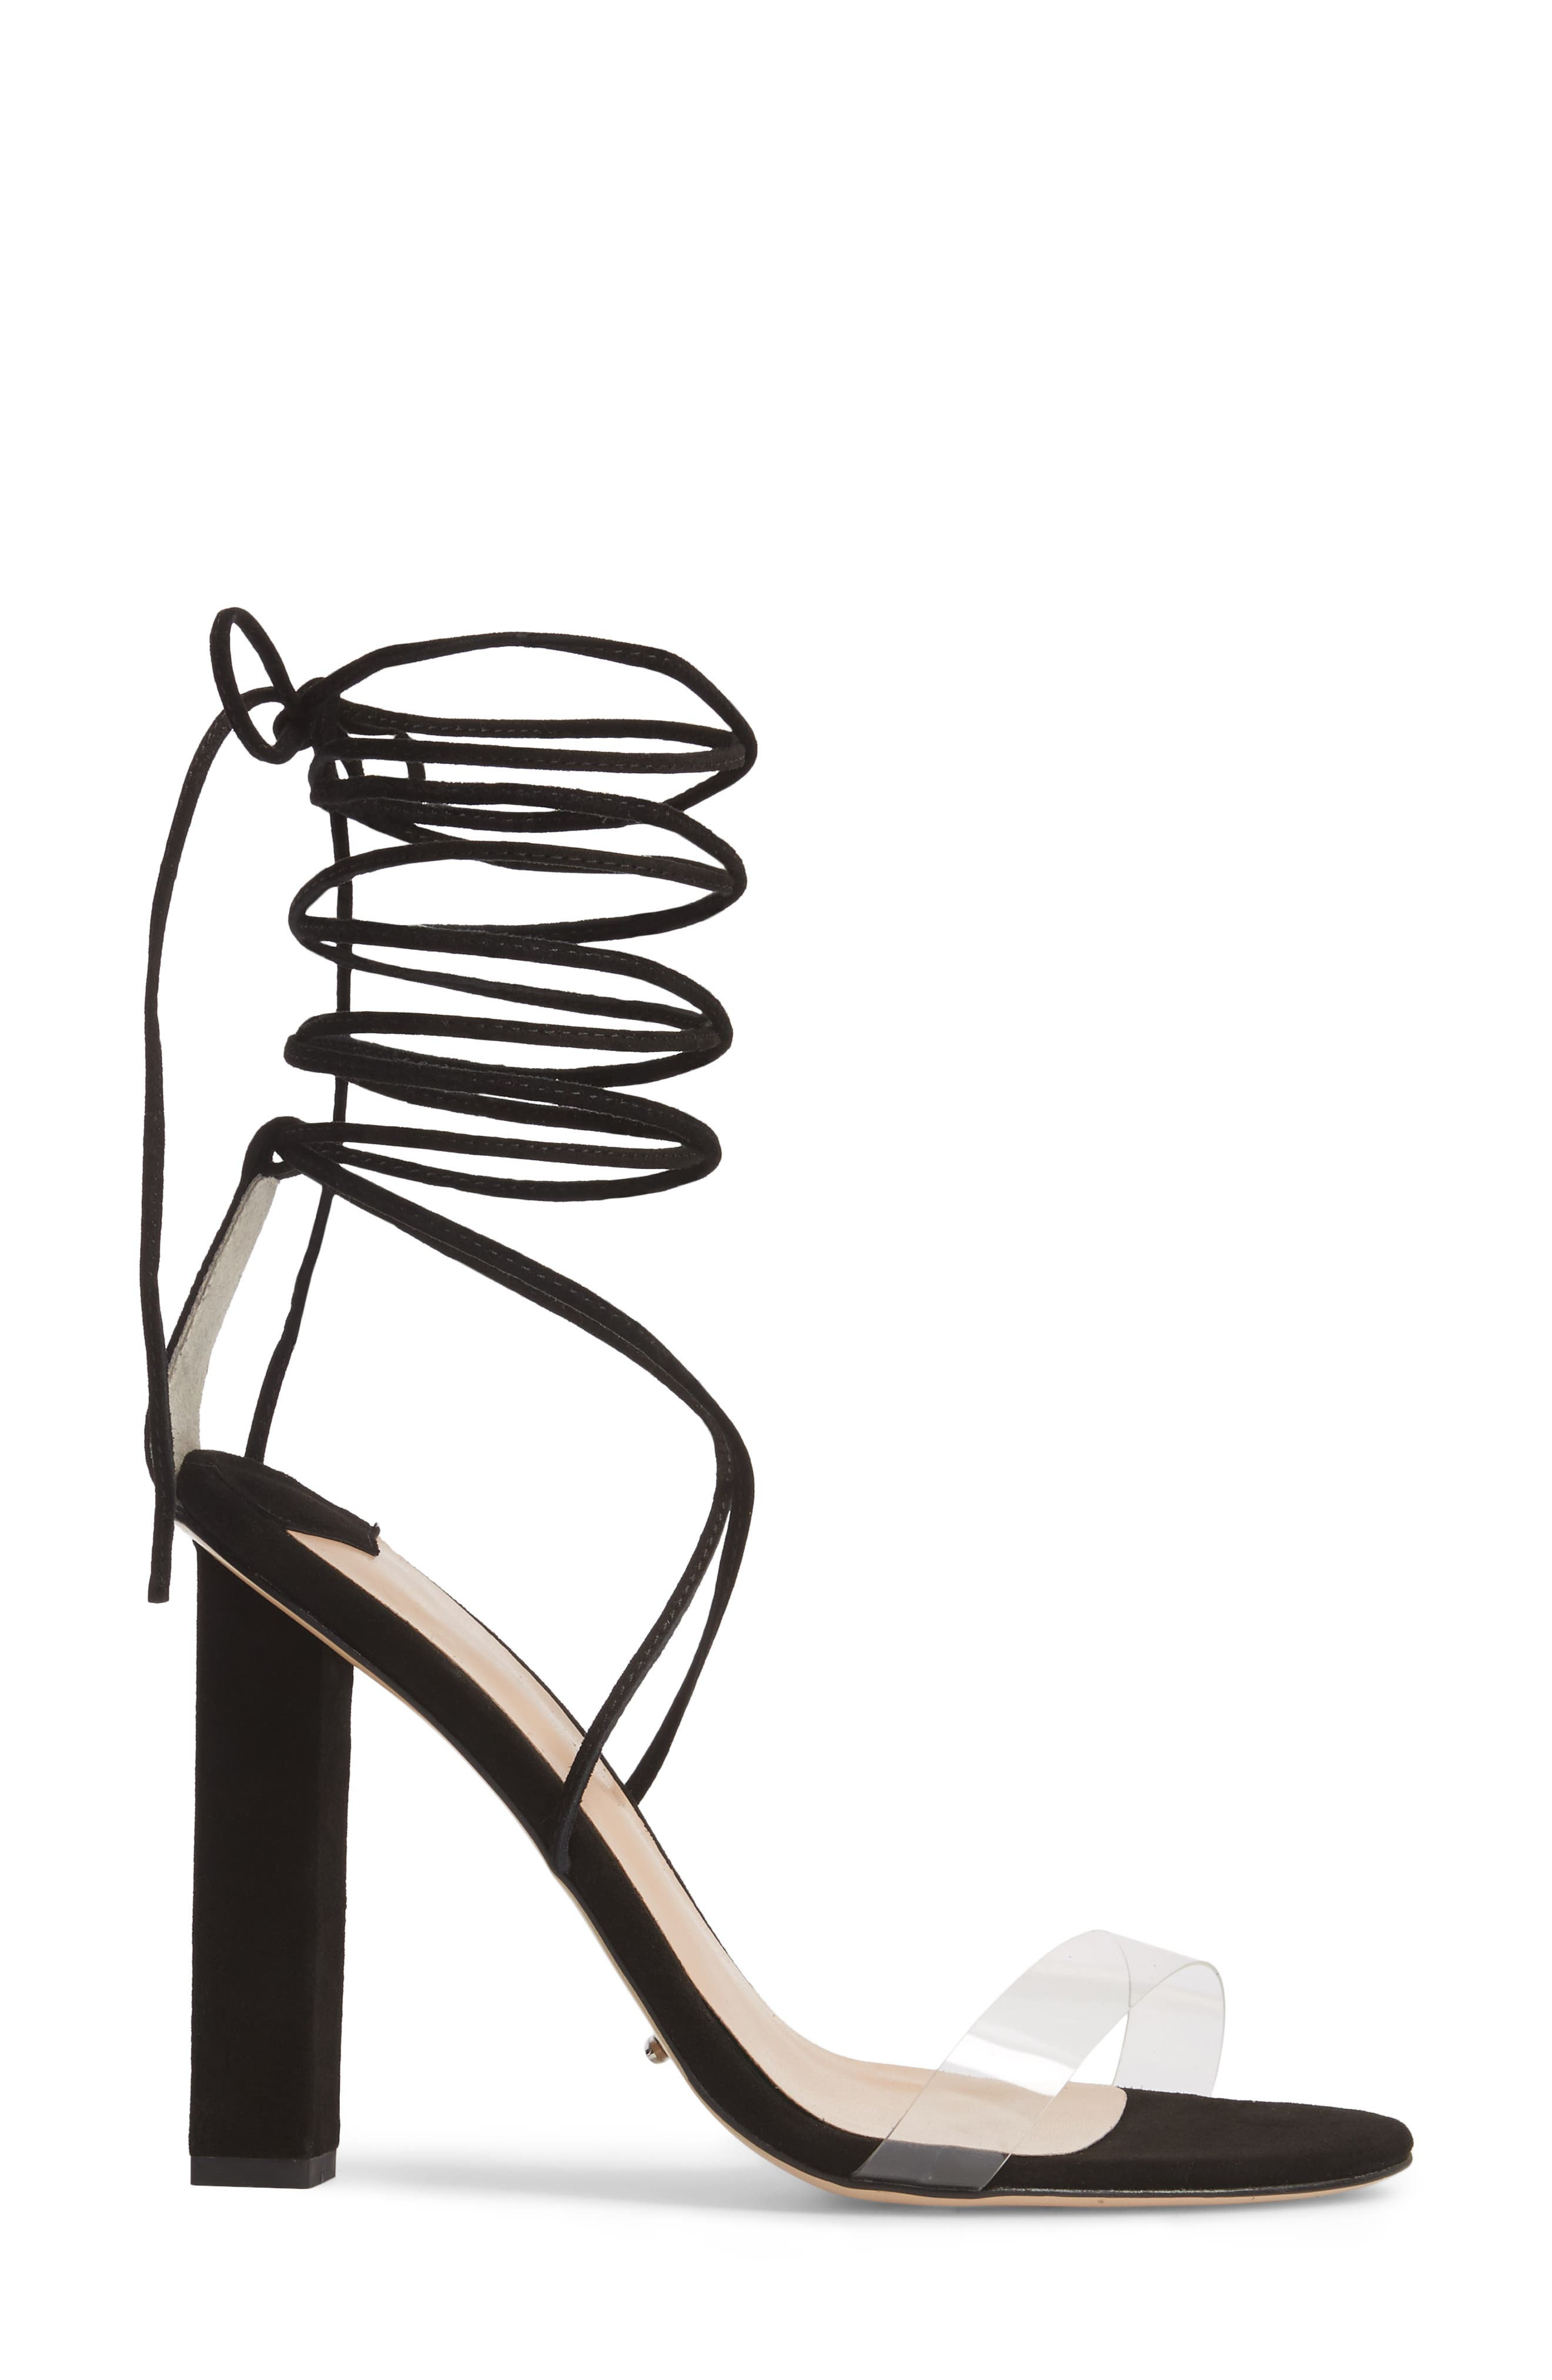 Kendall Ankle Tie Sandal,                             Alternate thumbnail 3, color,                             001